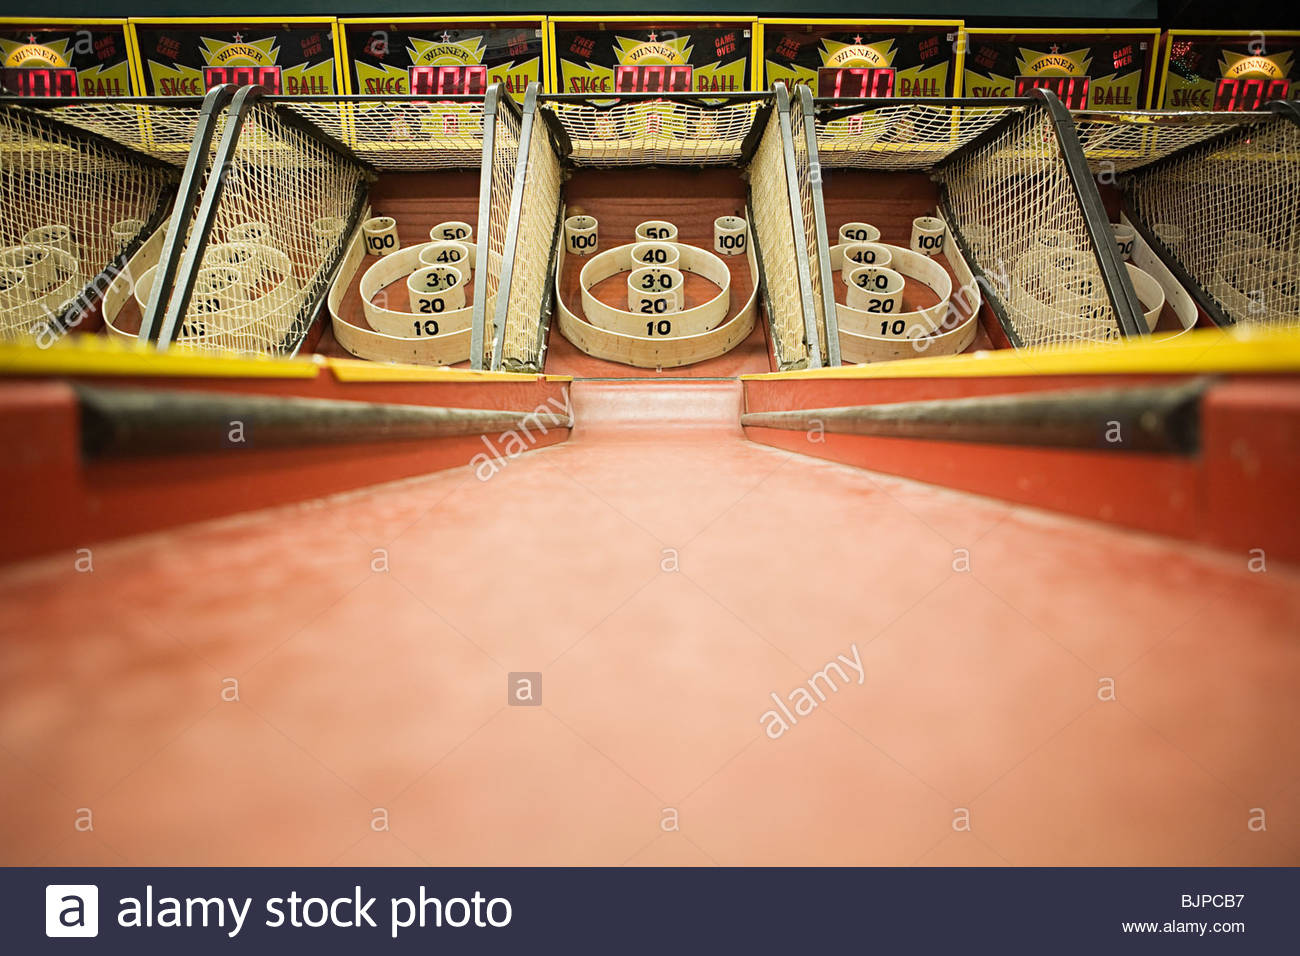 Arcade game - Stock Image